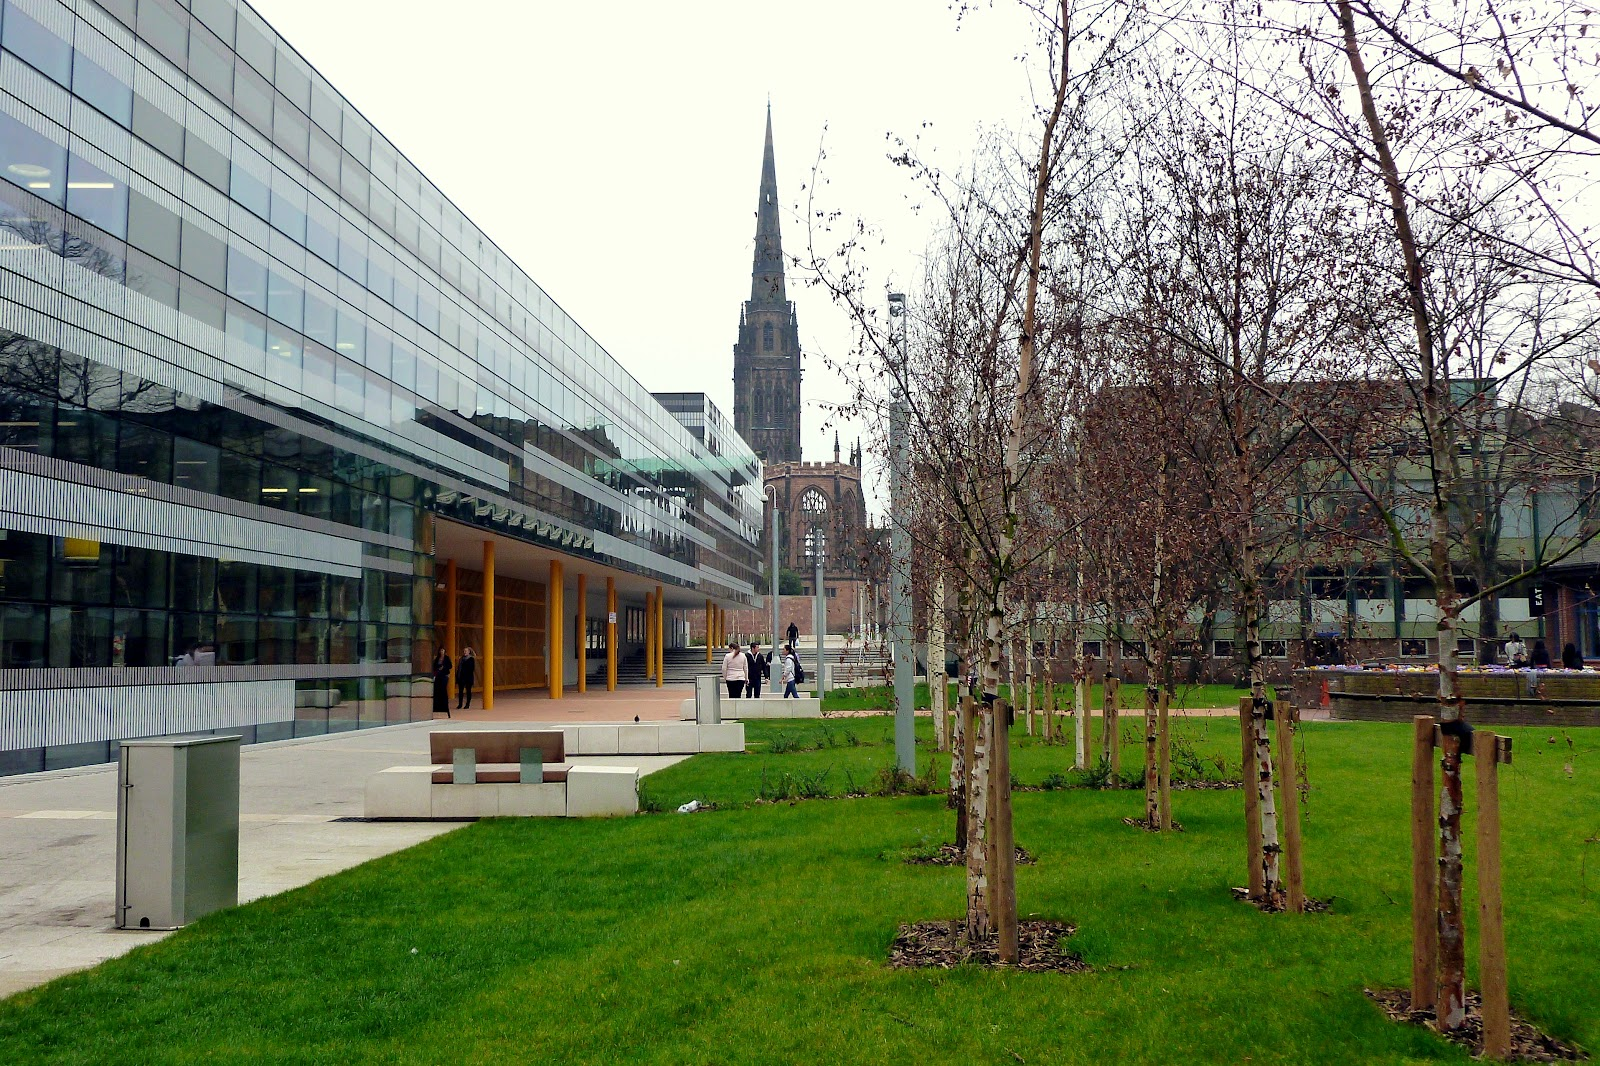 today around coventry  walking past  u0026 39 the hub u0026 39  at coventry university